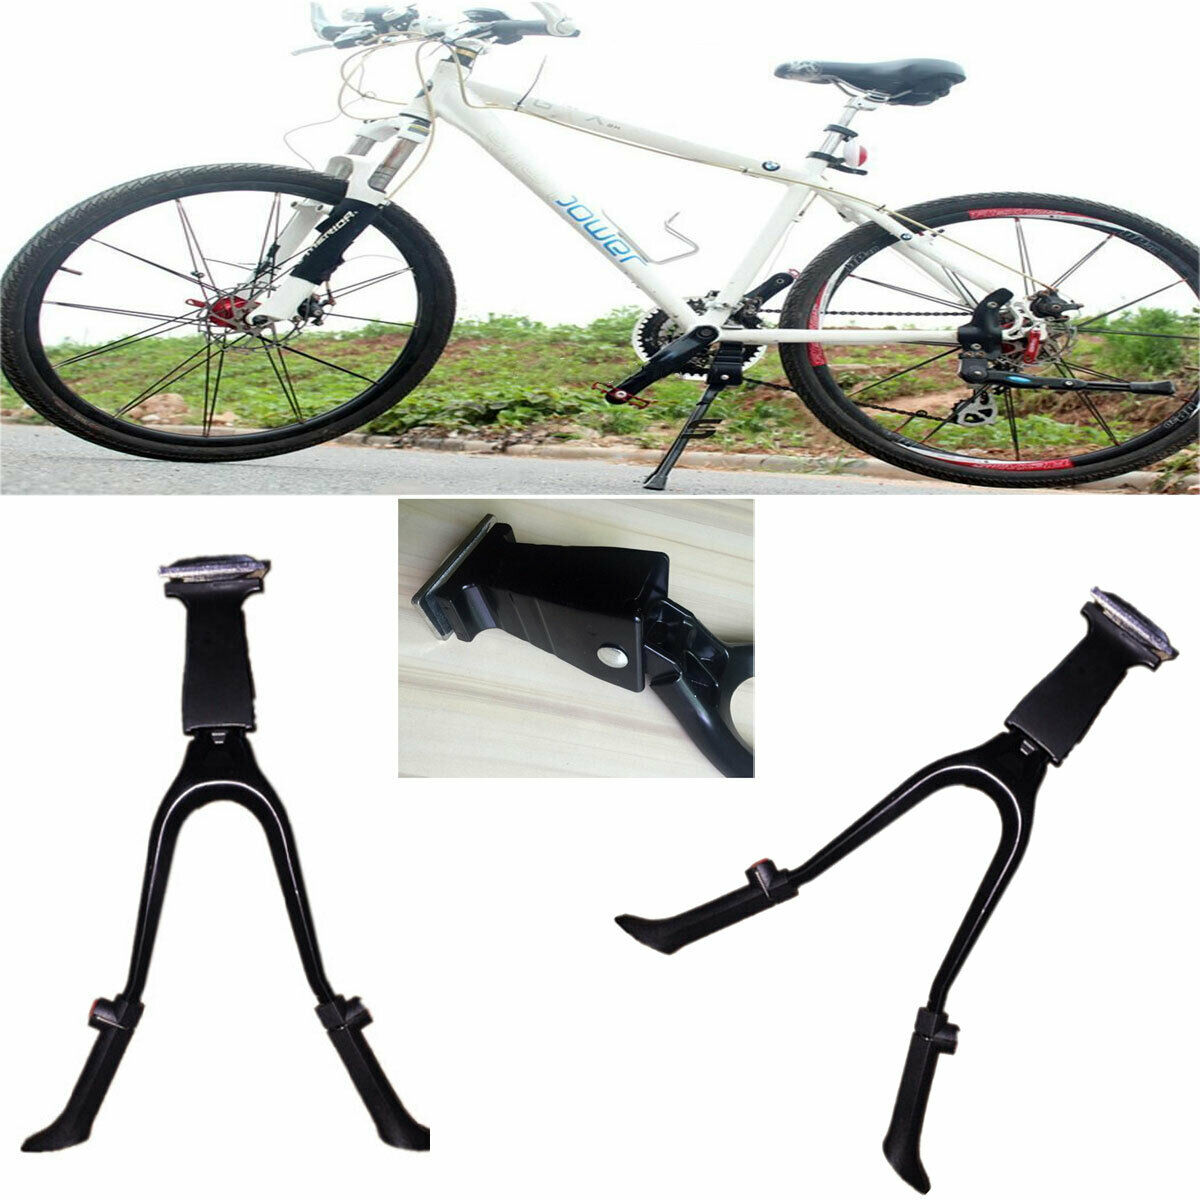 BICYCLE KICKSTAND CENTER MOUNTING BRACKET AND BOLT SILVER OR BLACK NEW CYCLING